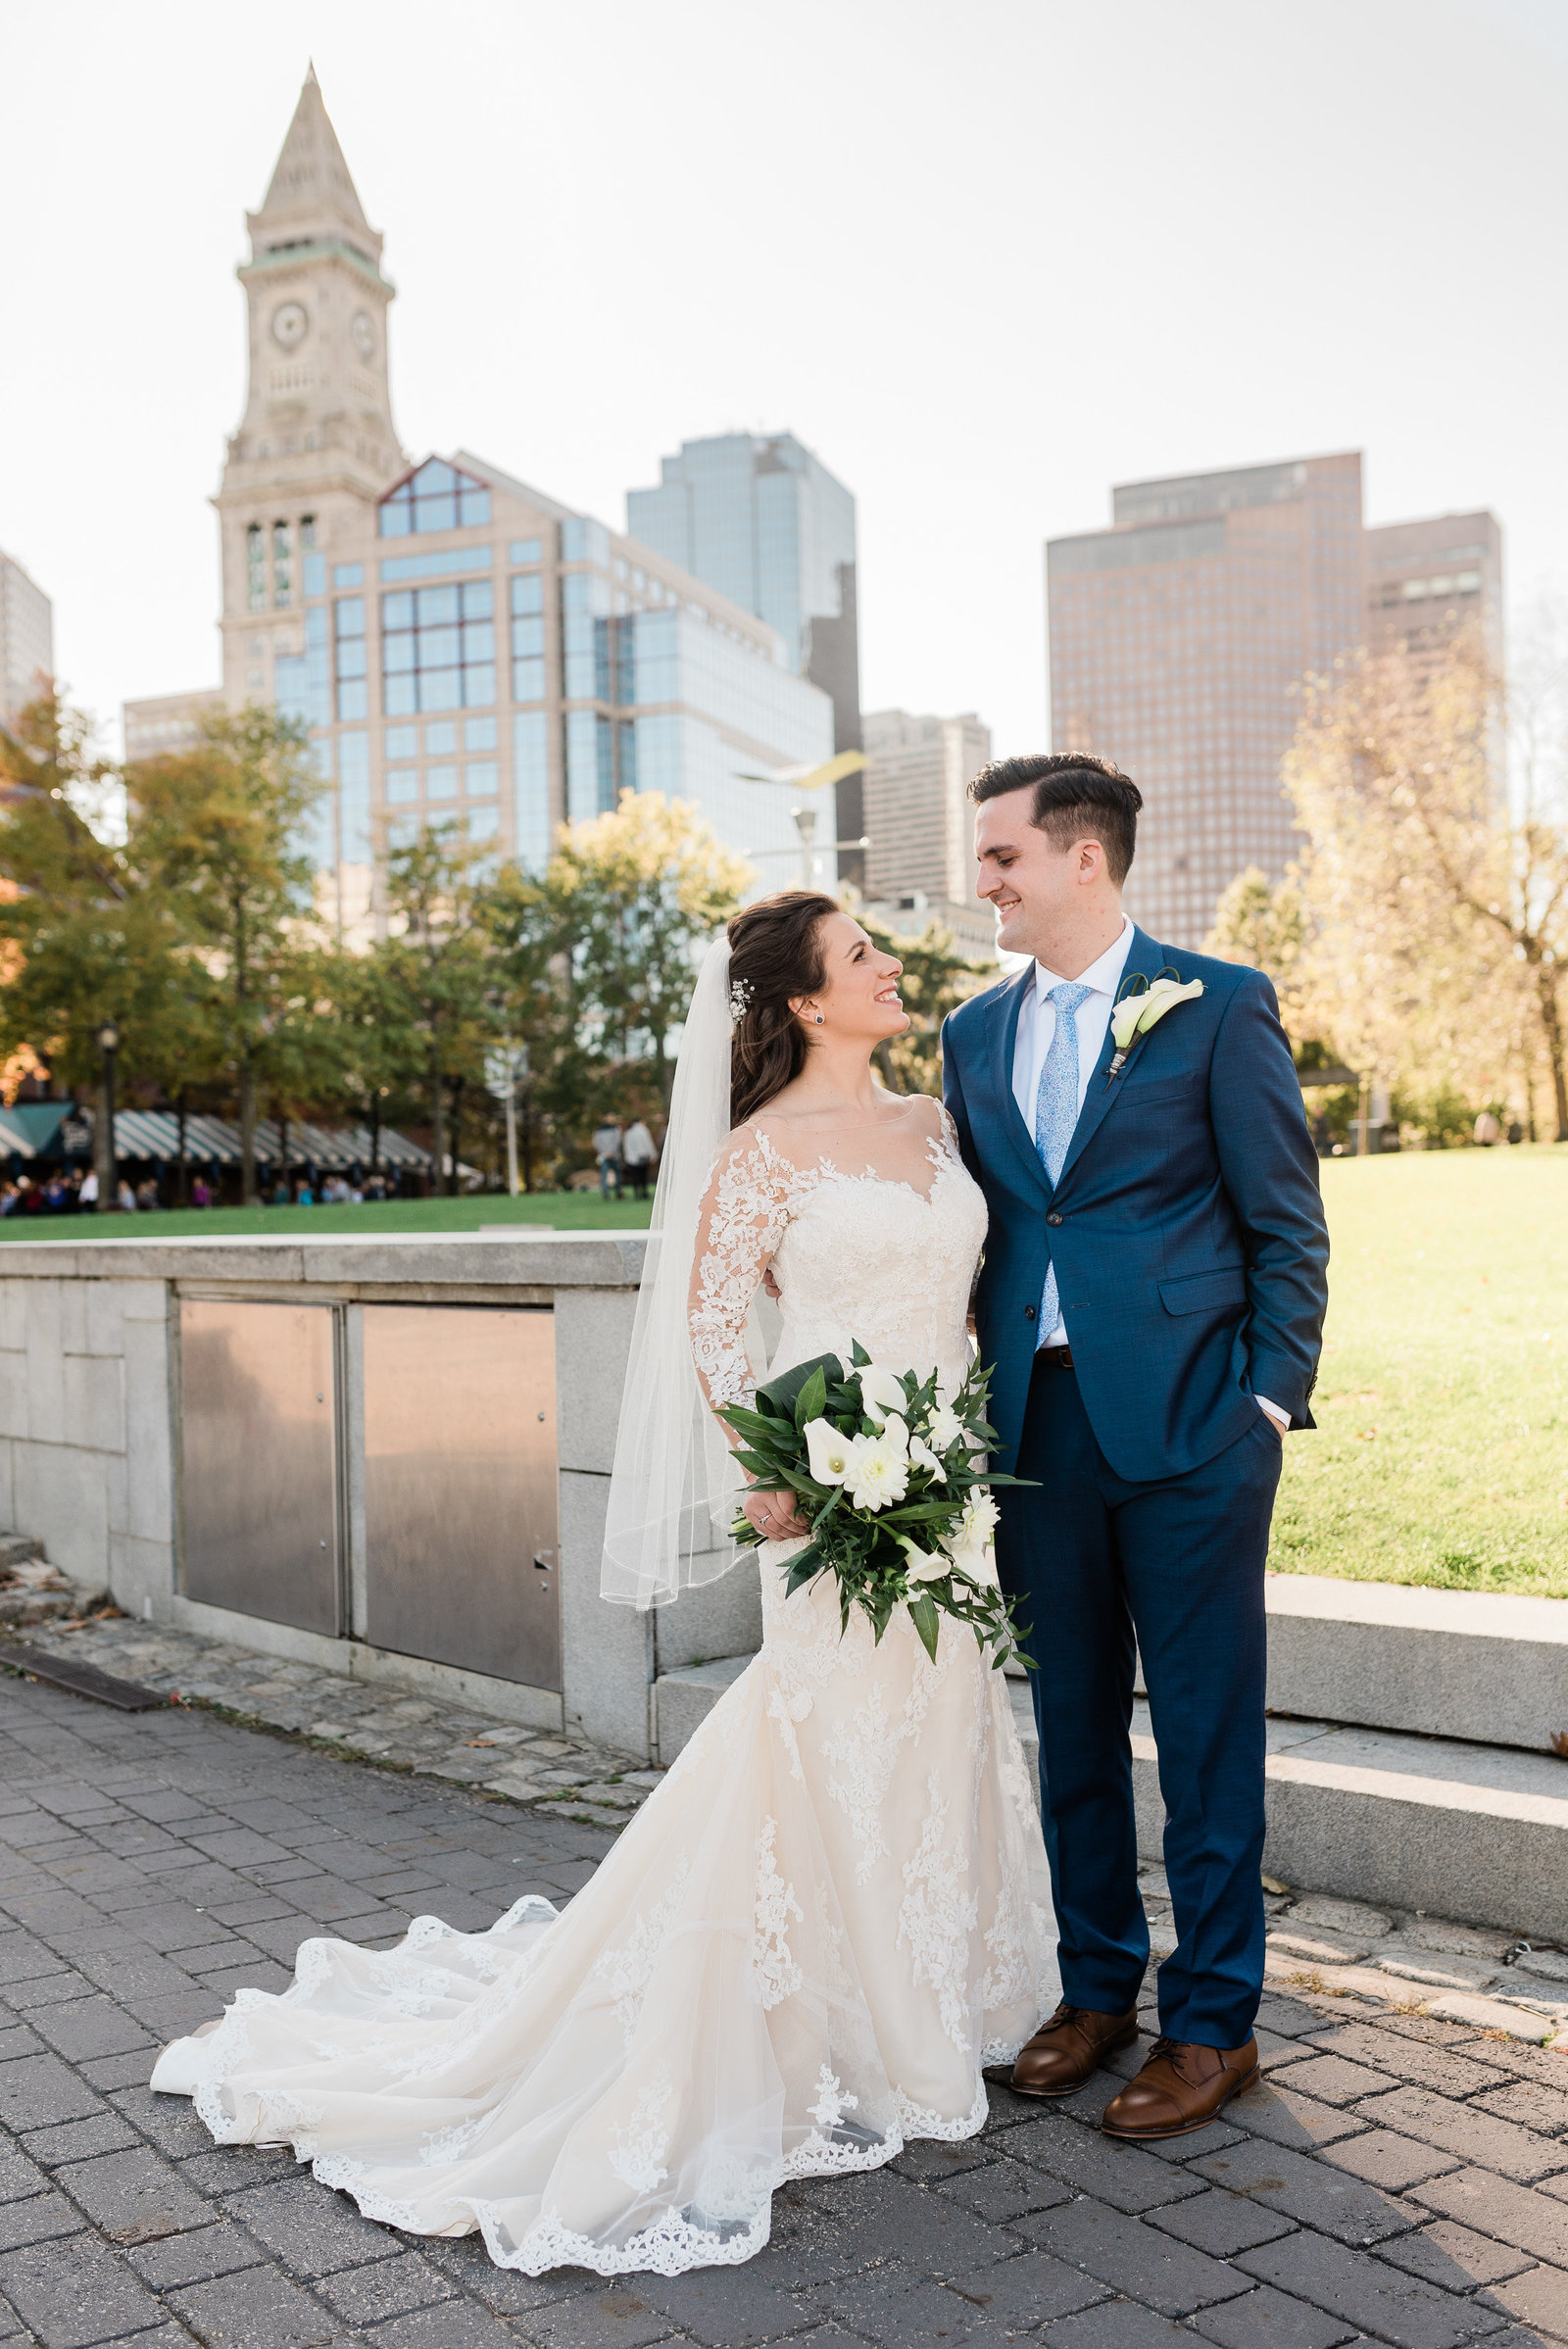 Downtown Boston wedding Custom house tower